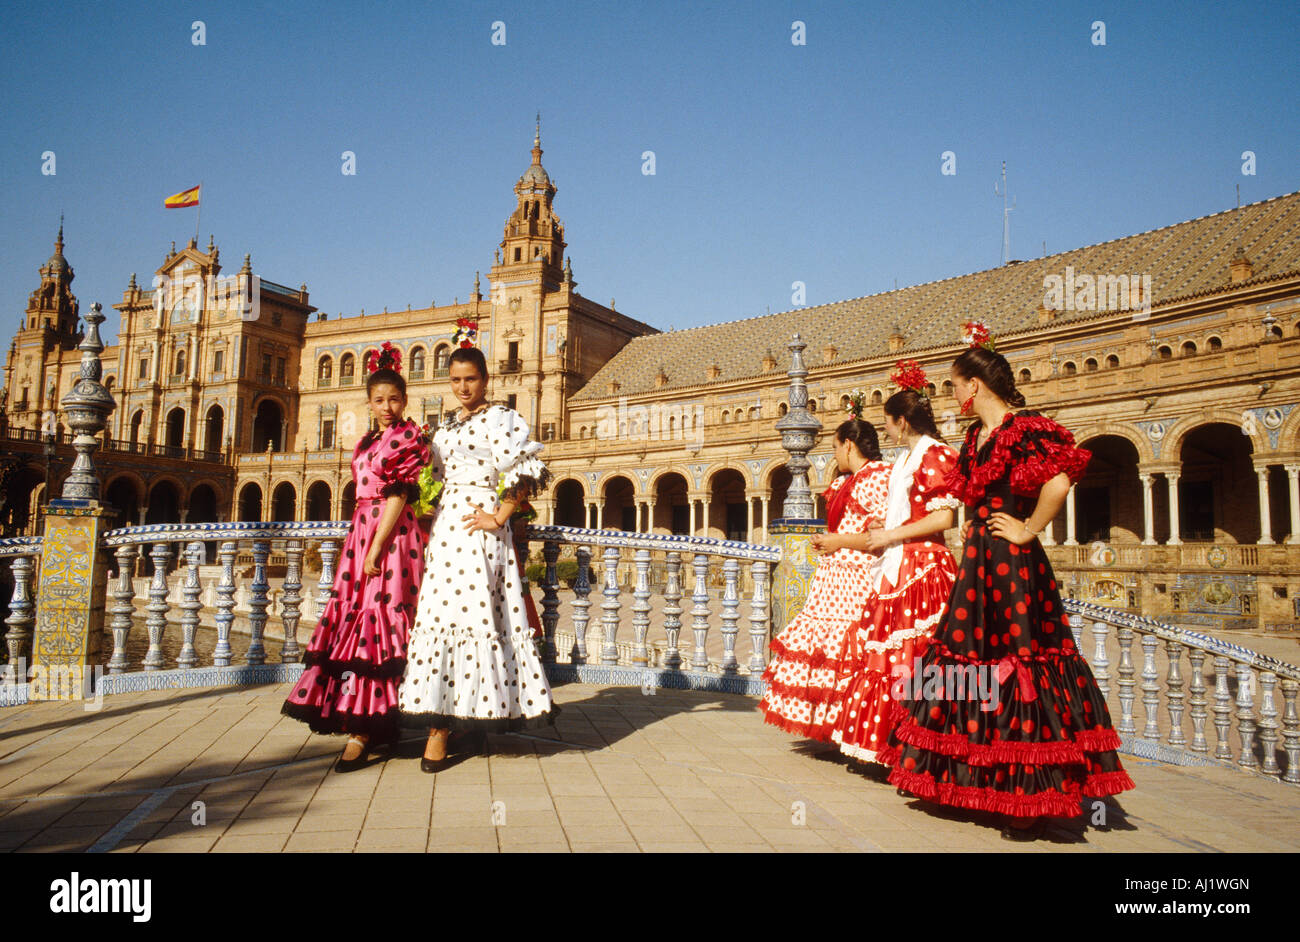 Flamenco girls plaza espana seville stock photo royalty for Espectaculo flamenco seville sevilla